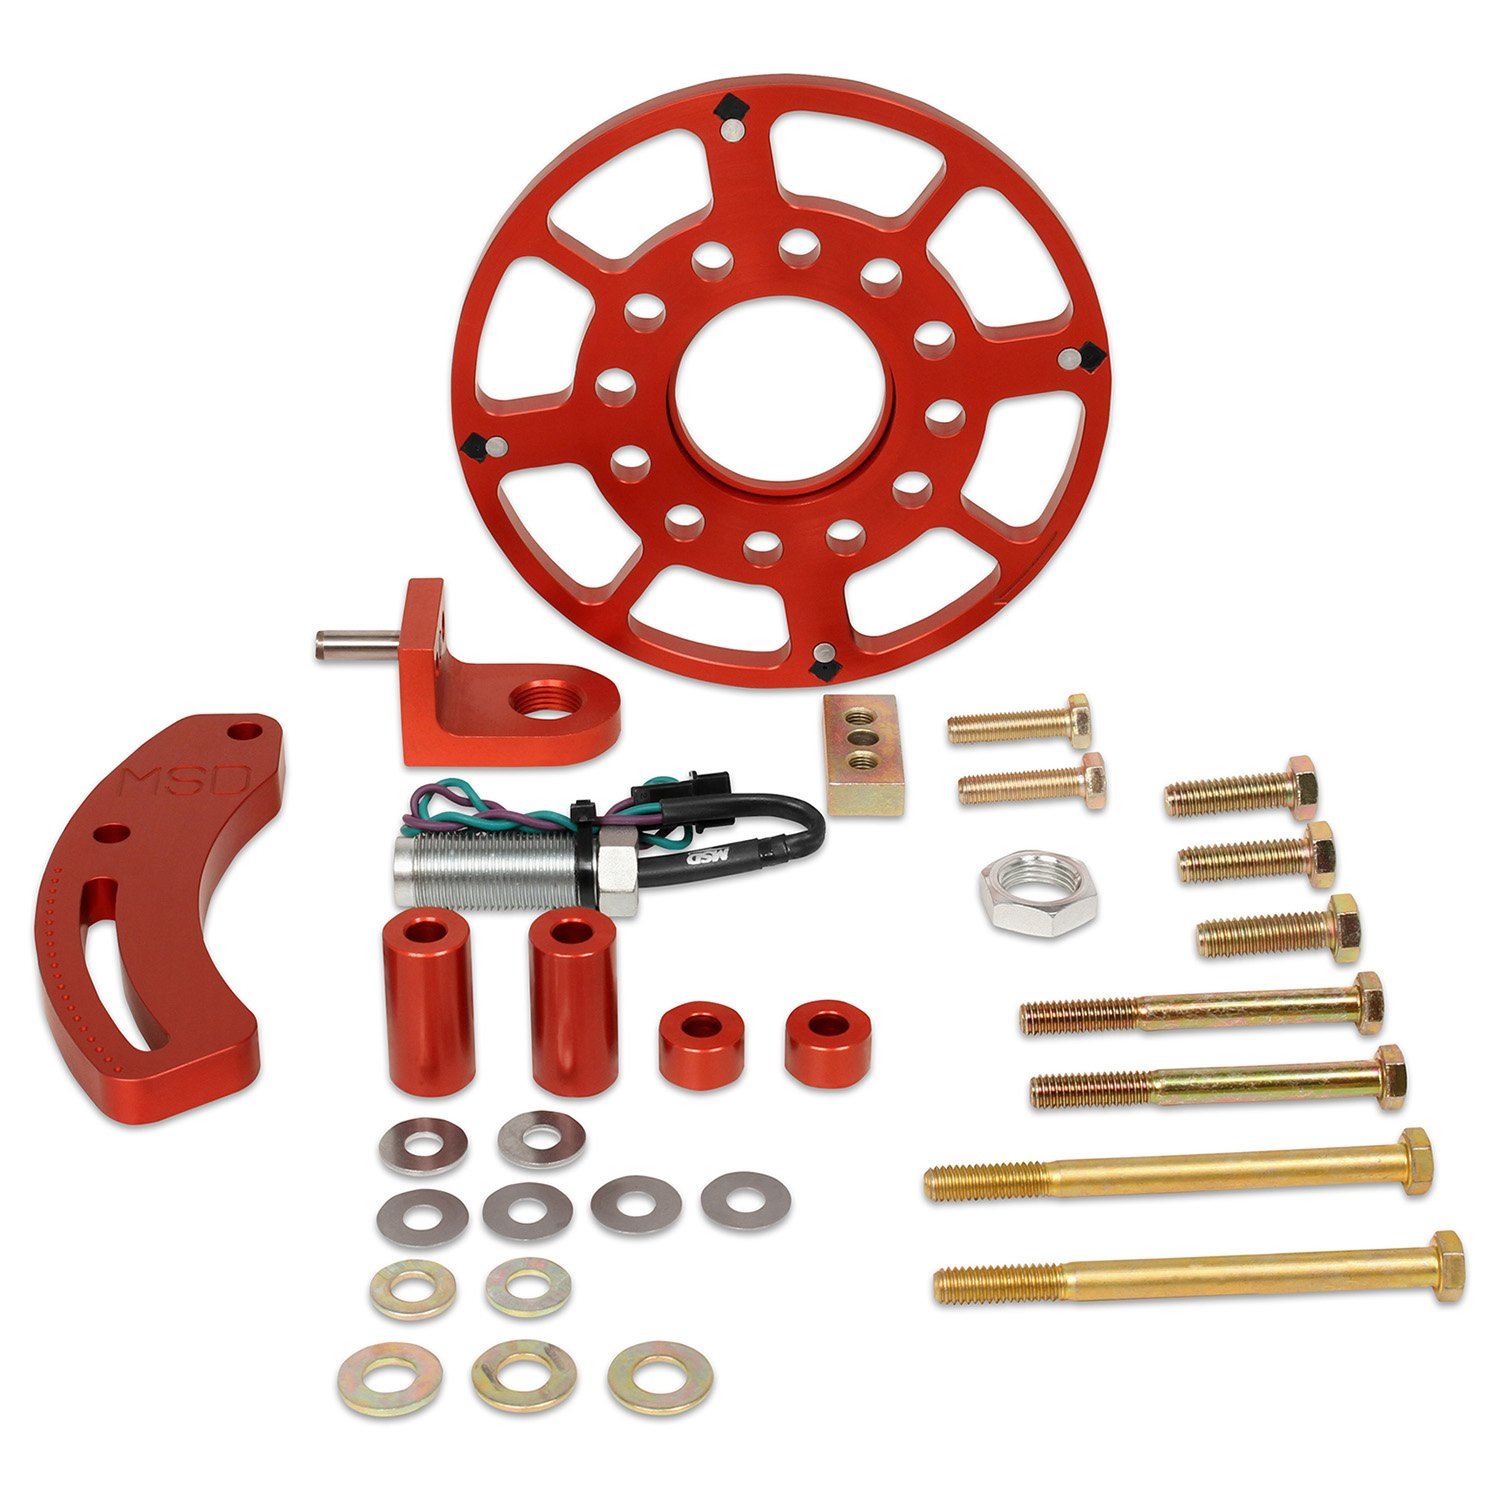 MSD 8640 Ford Small Block Crank Trigger Kit